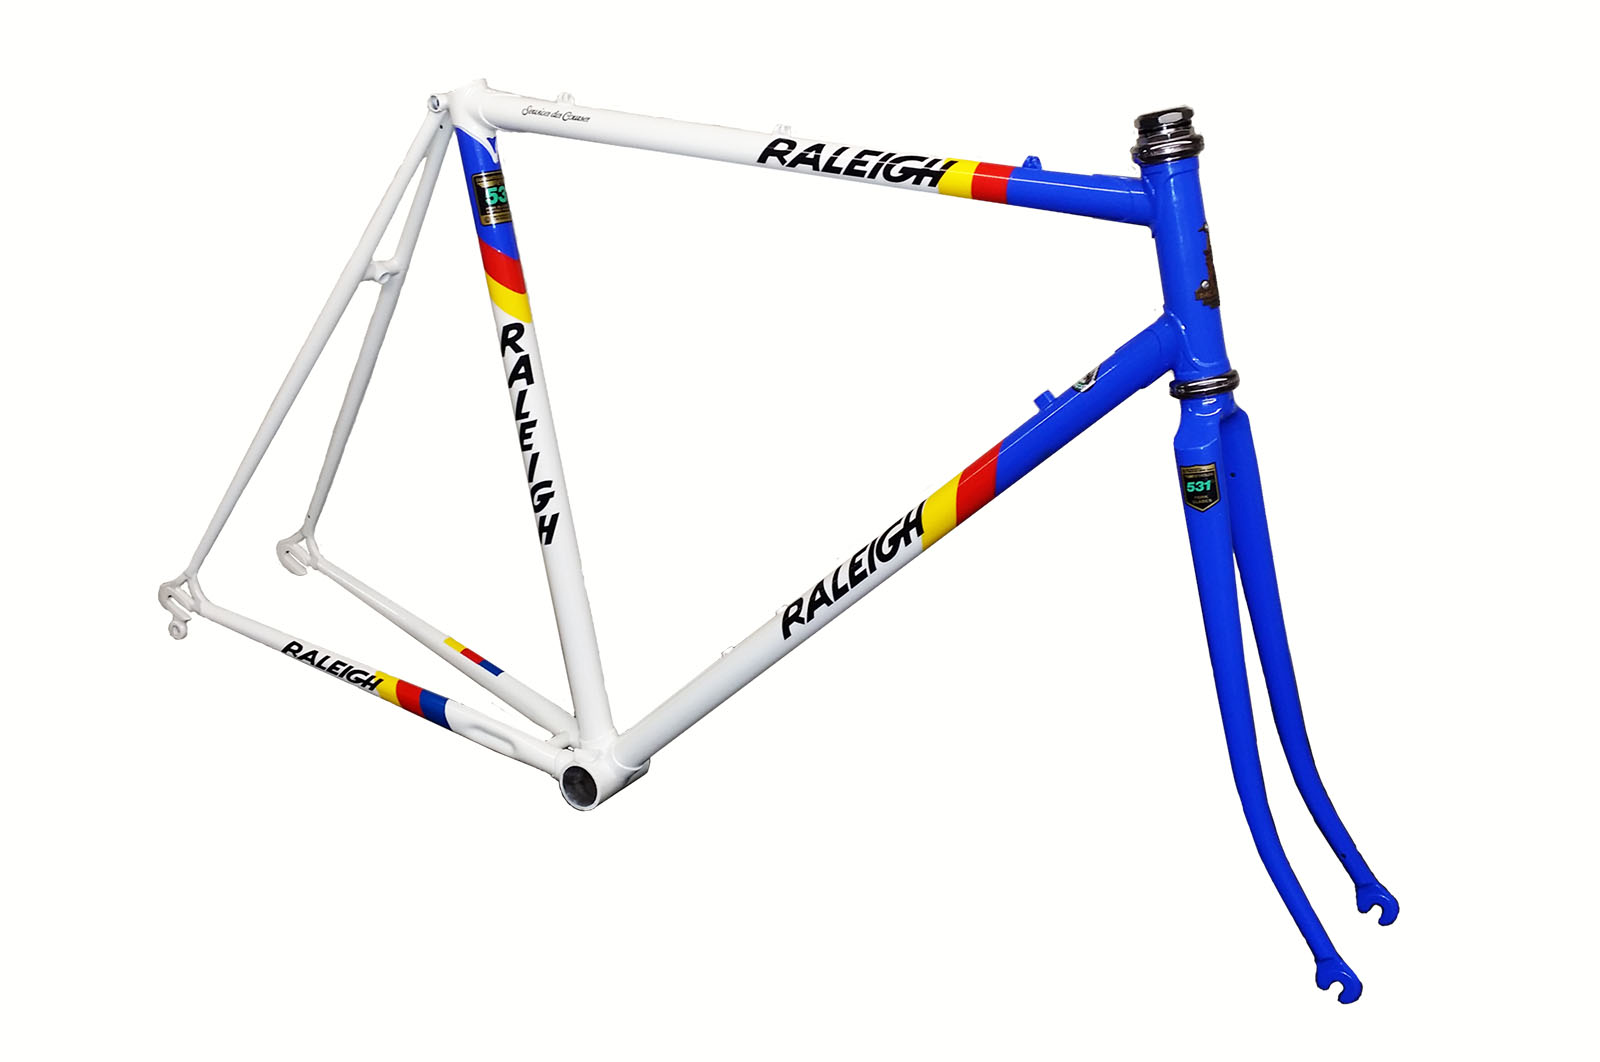 Raleigh Panasonic Colours